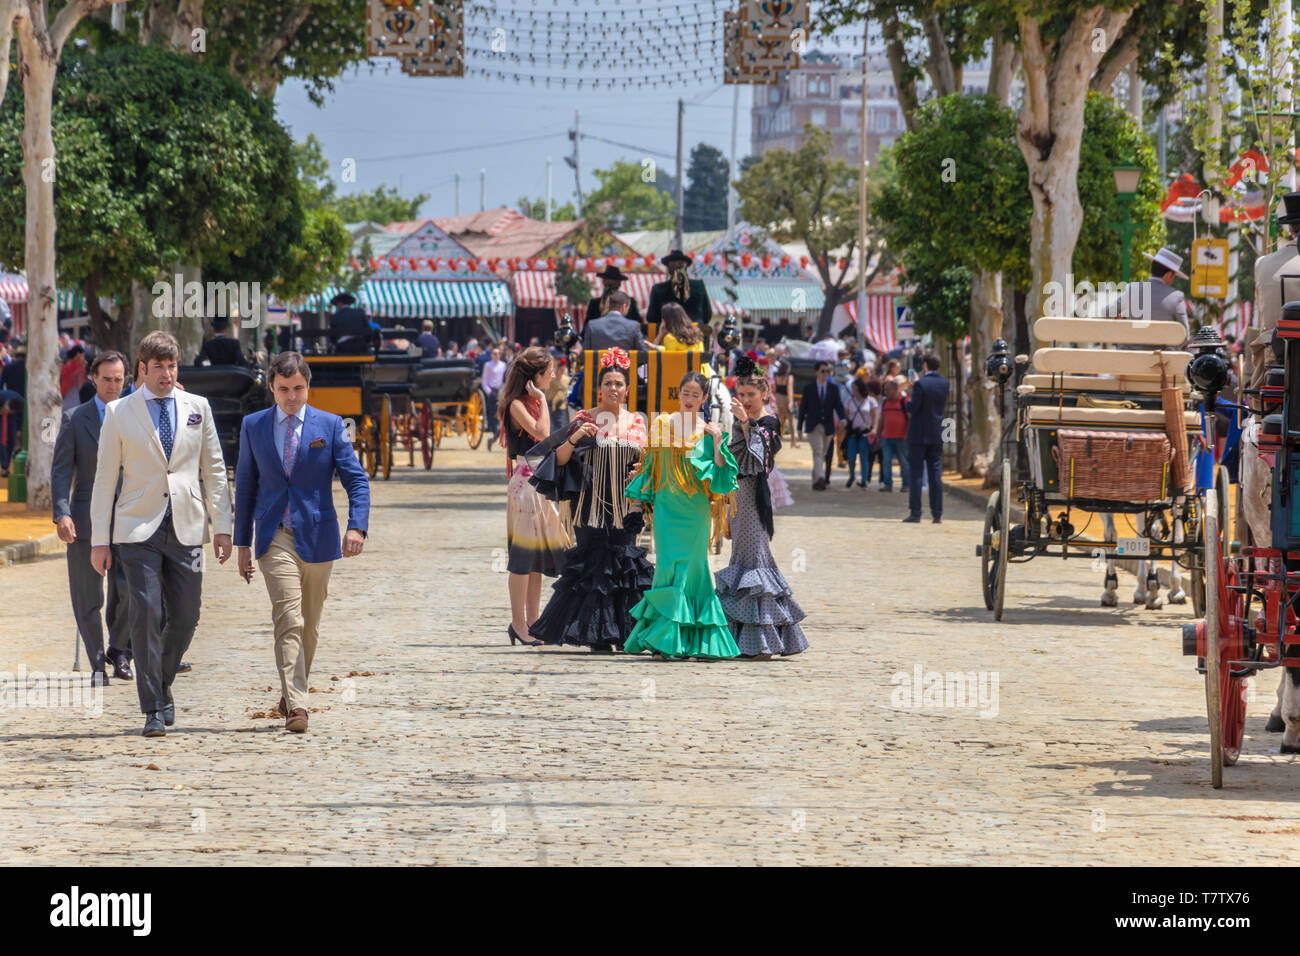 Seville, Spain - May 5, 2019: Young and beautiful women during the the April Fair of Seville on May, 5, 2019 in Seville, Spain - Stock Image